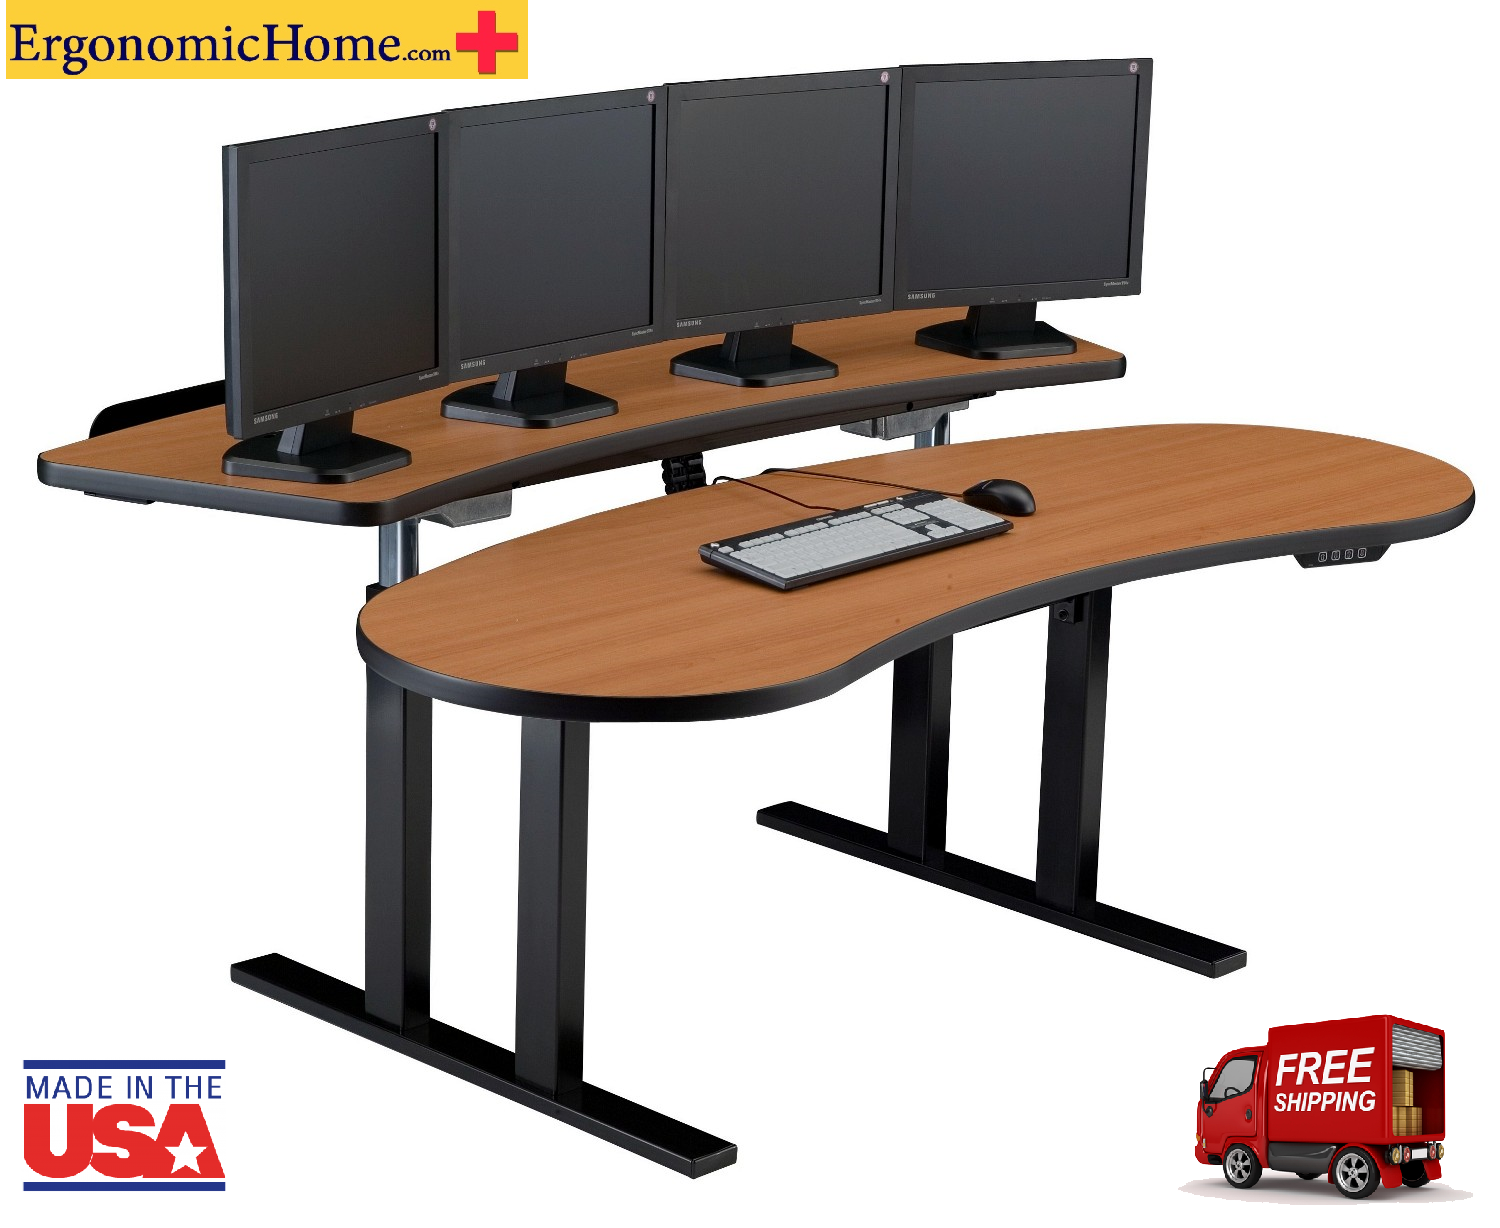 Pacs radiology furniture stand up desk viking pacs radiology furniture imaging workstation - Viking office desk ...